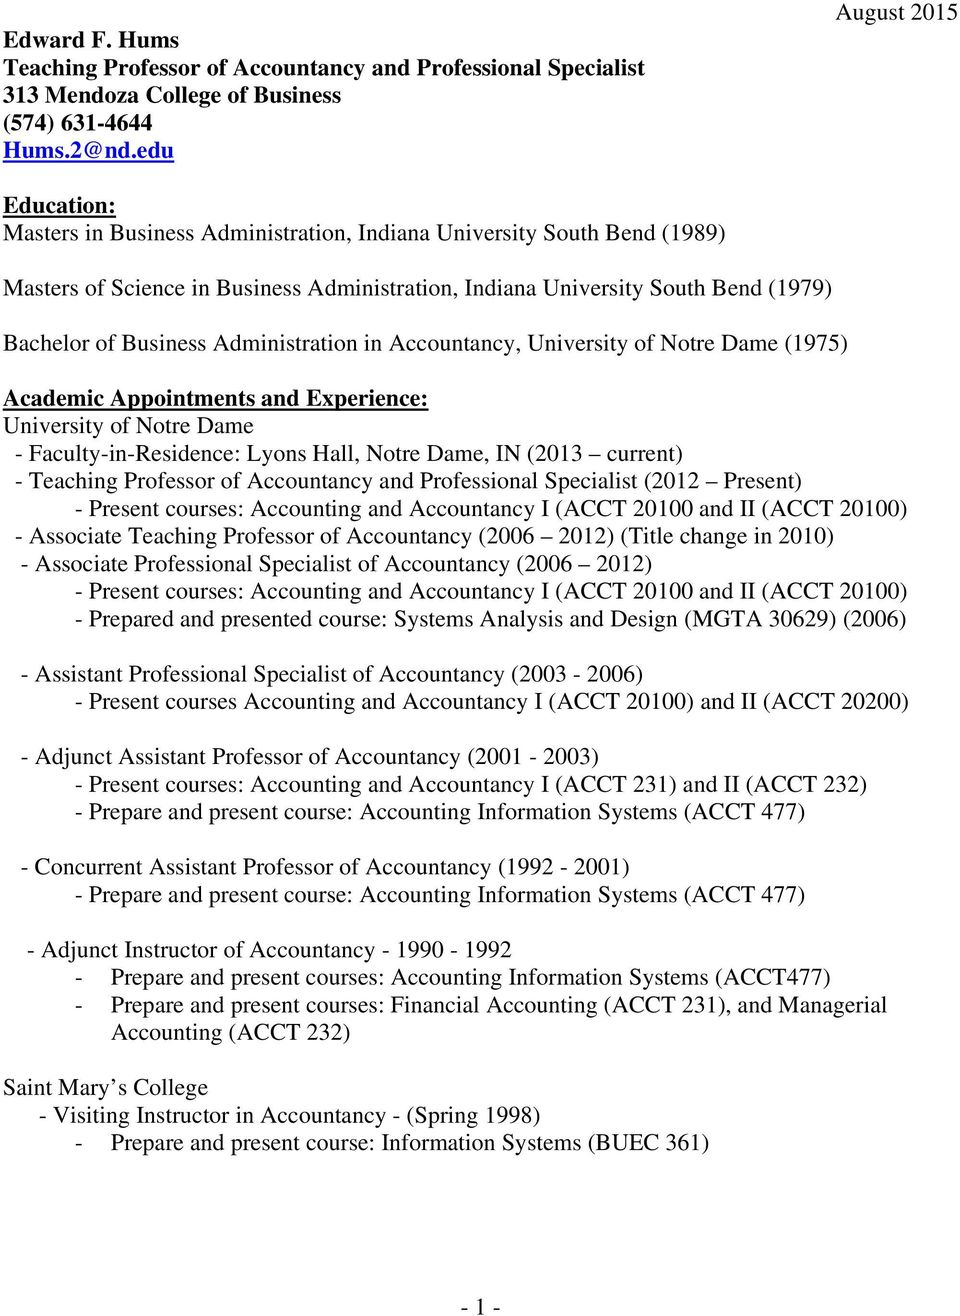 Business Administration in Accountancy, University of Notre Dame (1975) Academic Appointments and Experience: University of Notre Dame - Faculty-in-Residence: Lyons Hall, Notre Dame, IN (2013